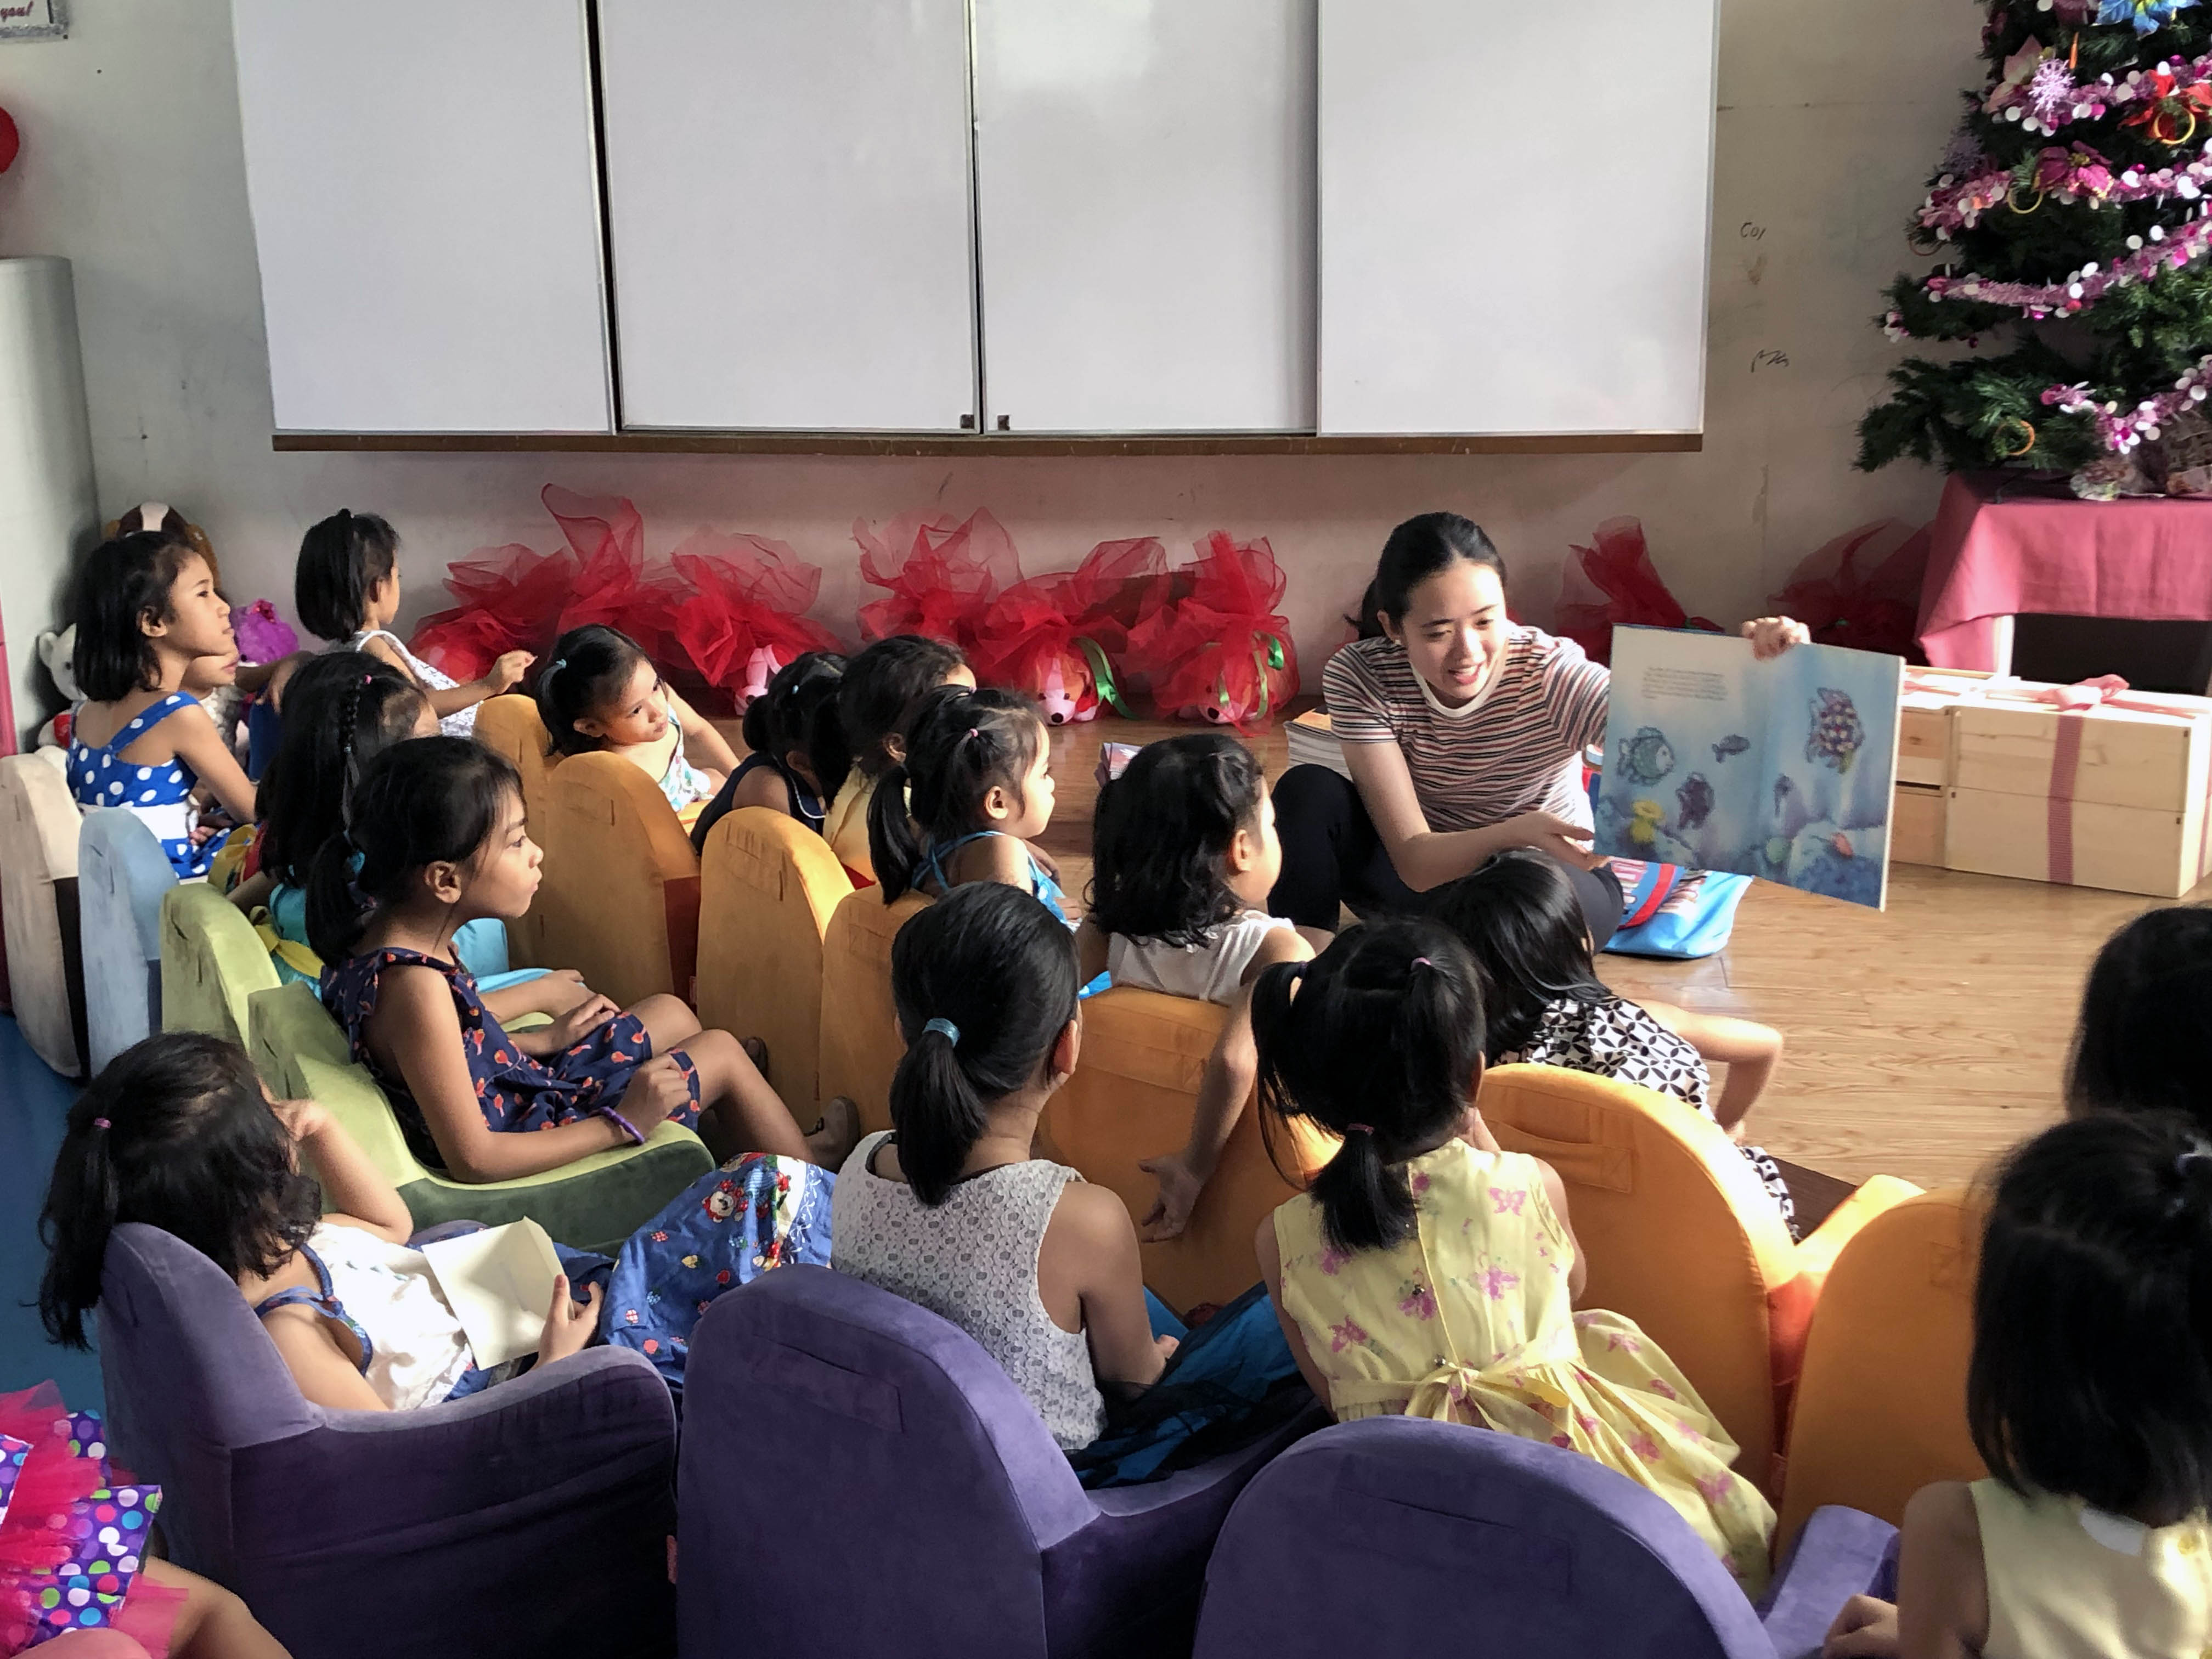 Alexis Lopez (right) reads to the children at White Cross Orphanage